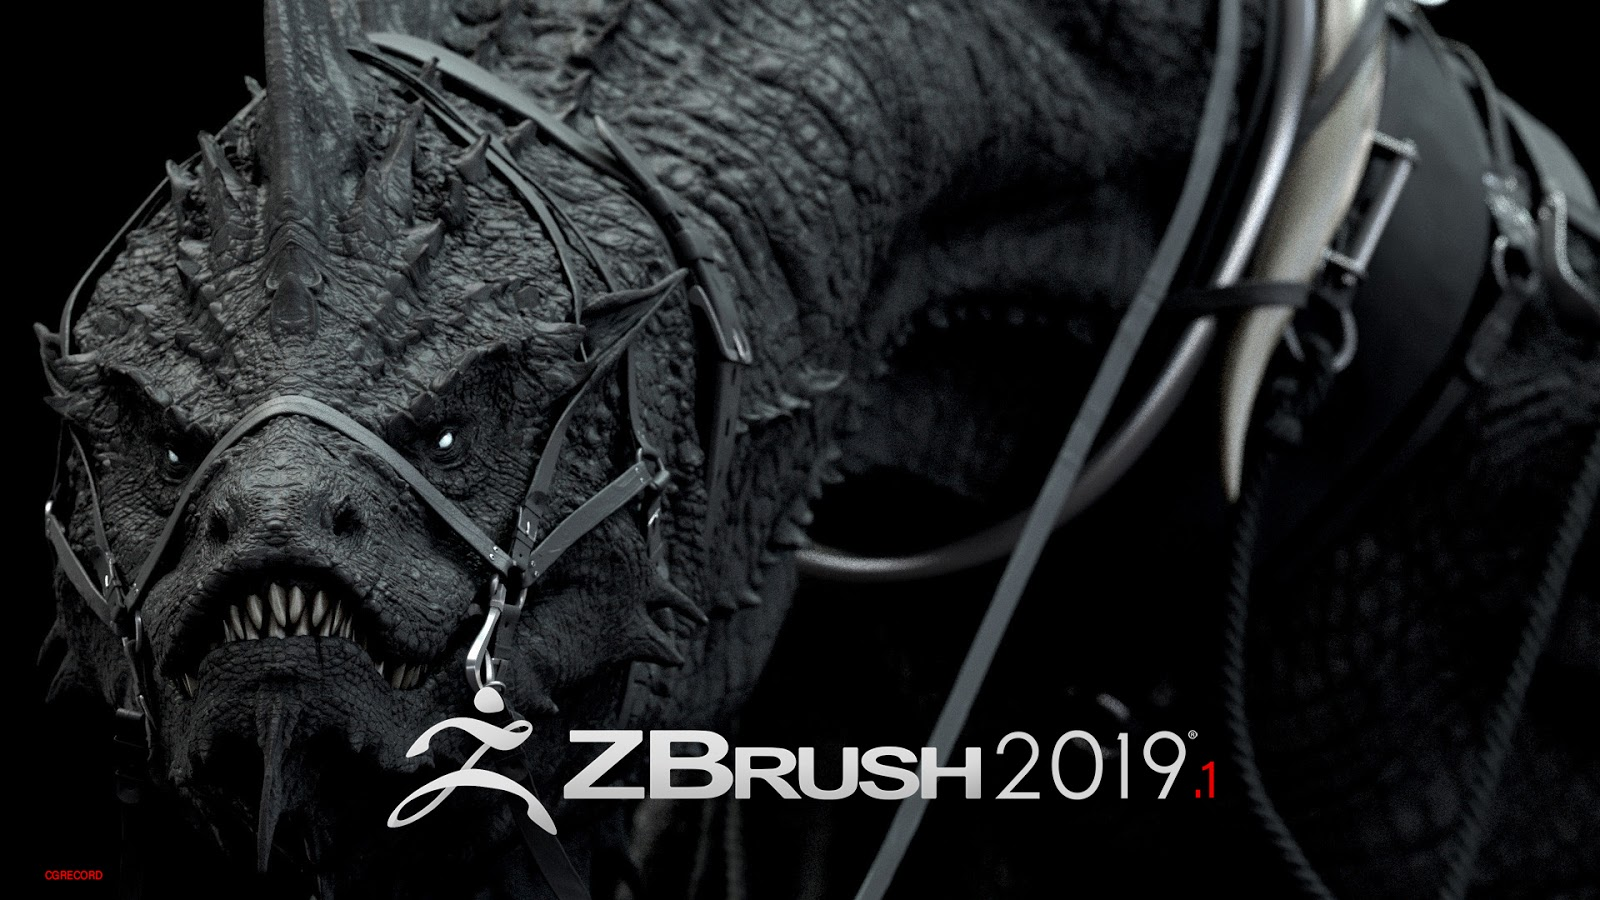 Pixologic Zbrush 2019 1 | Computer Graphics Daily News